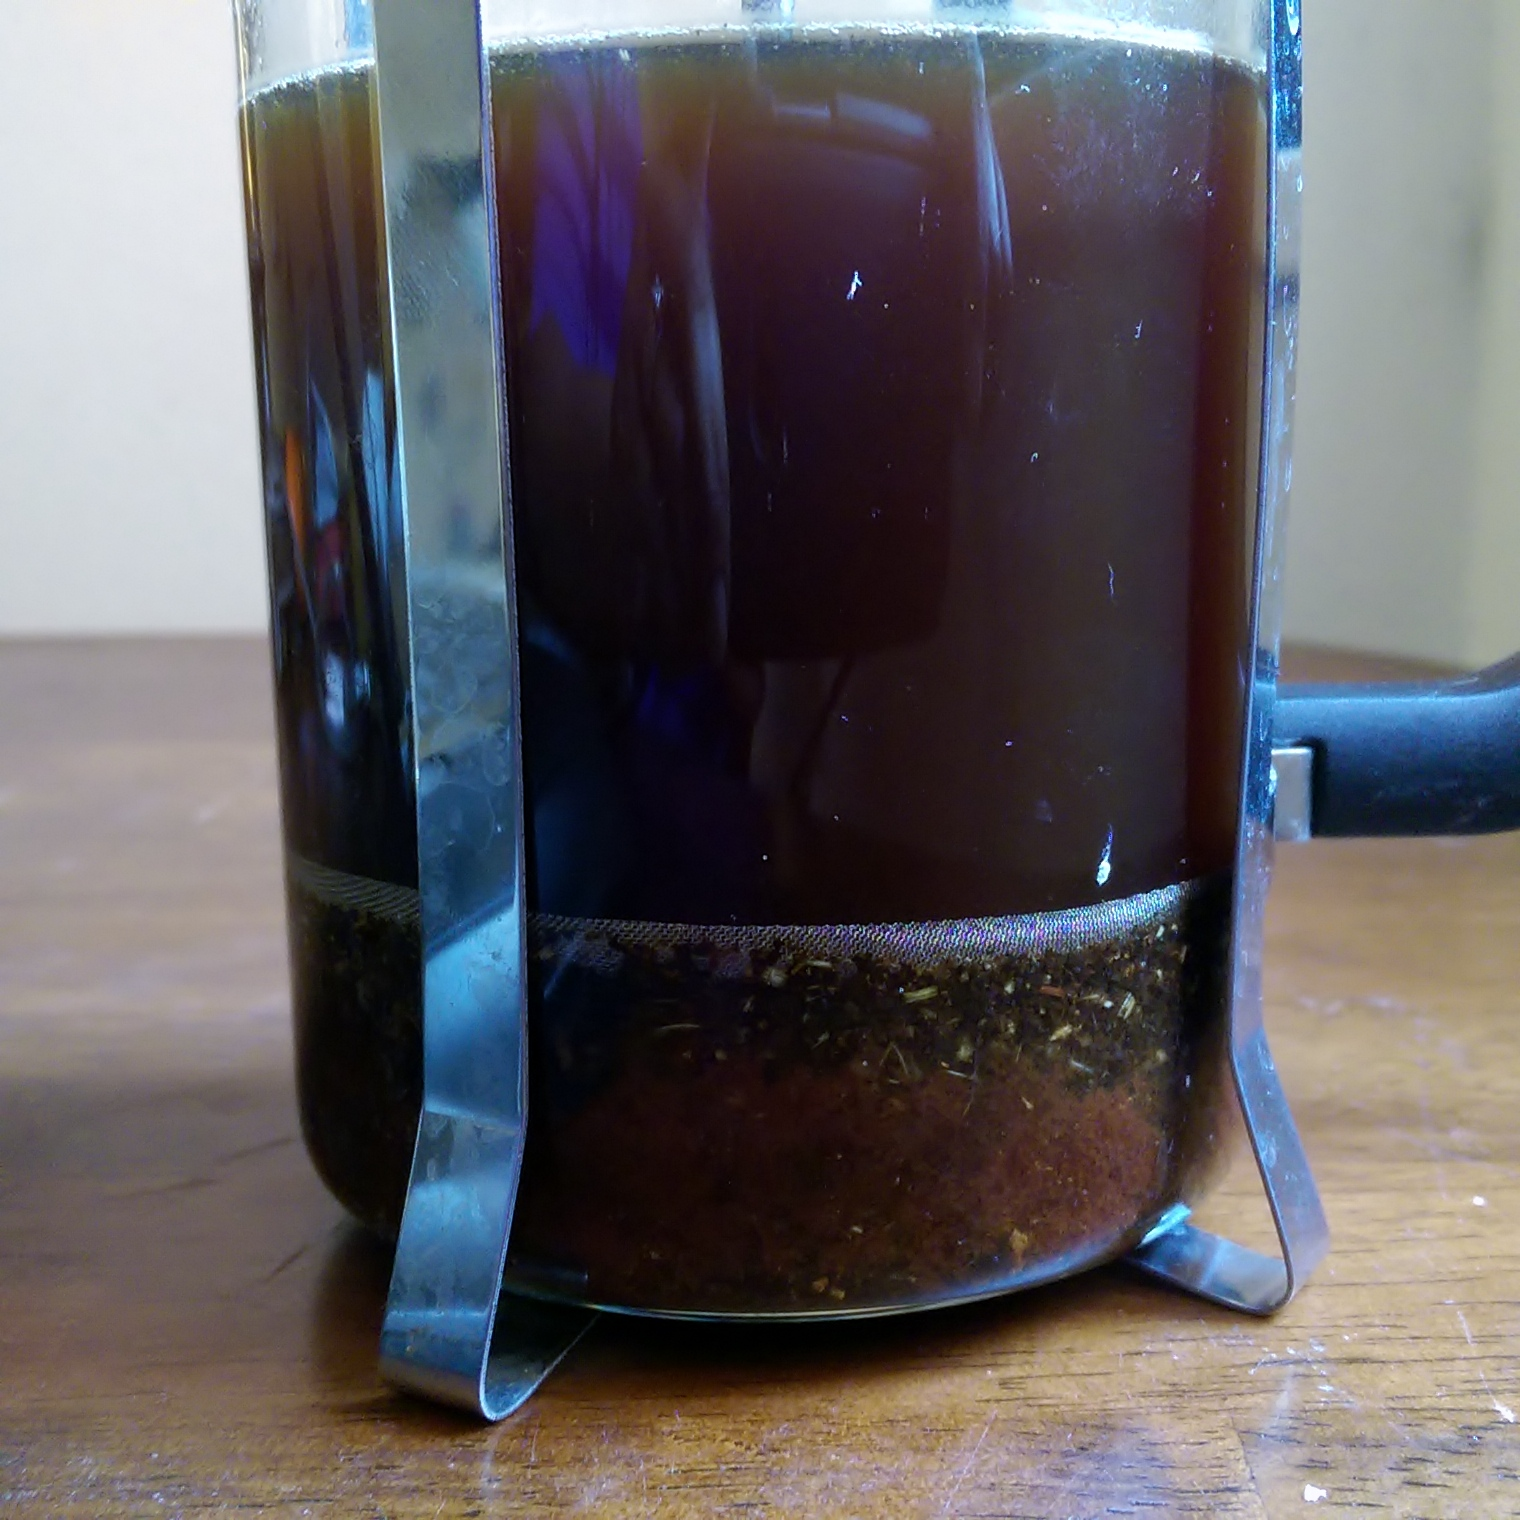 Using a French Press makes for easy straining. I love pressing down and seeing my syrup perfectly strained.